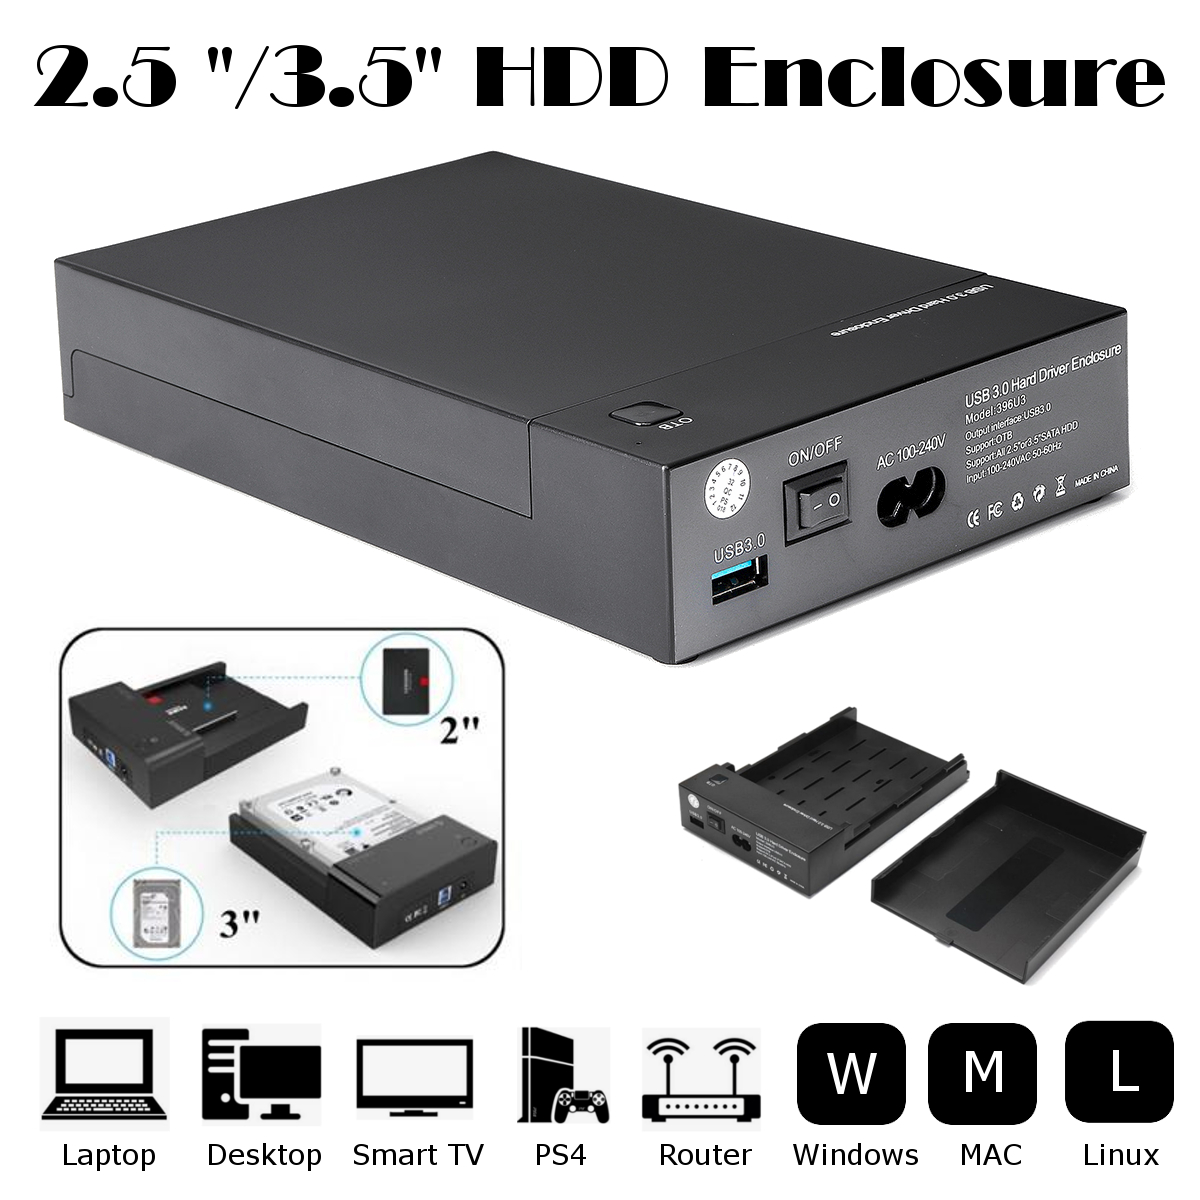 2.5''/3.5'' HDD Case USB 3.0 to SATA HDD Hard Disk Drive Enclosure External Box Case External Storage HDD Enclosure 2 5 inch hdd case sata to usb 3 0 hard drive disk sata external storage hdd enclosure box with usb cable hdd hard drive box